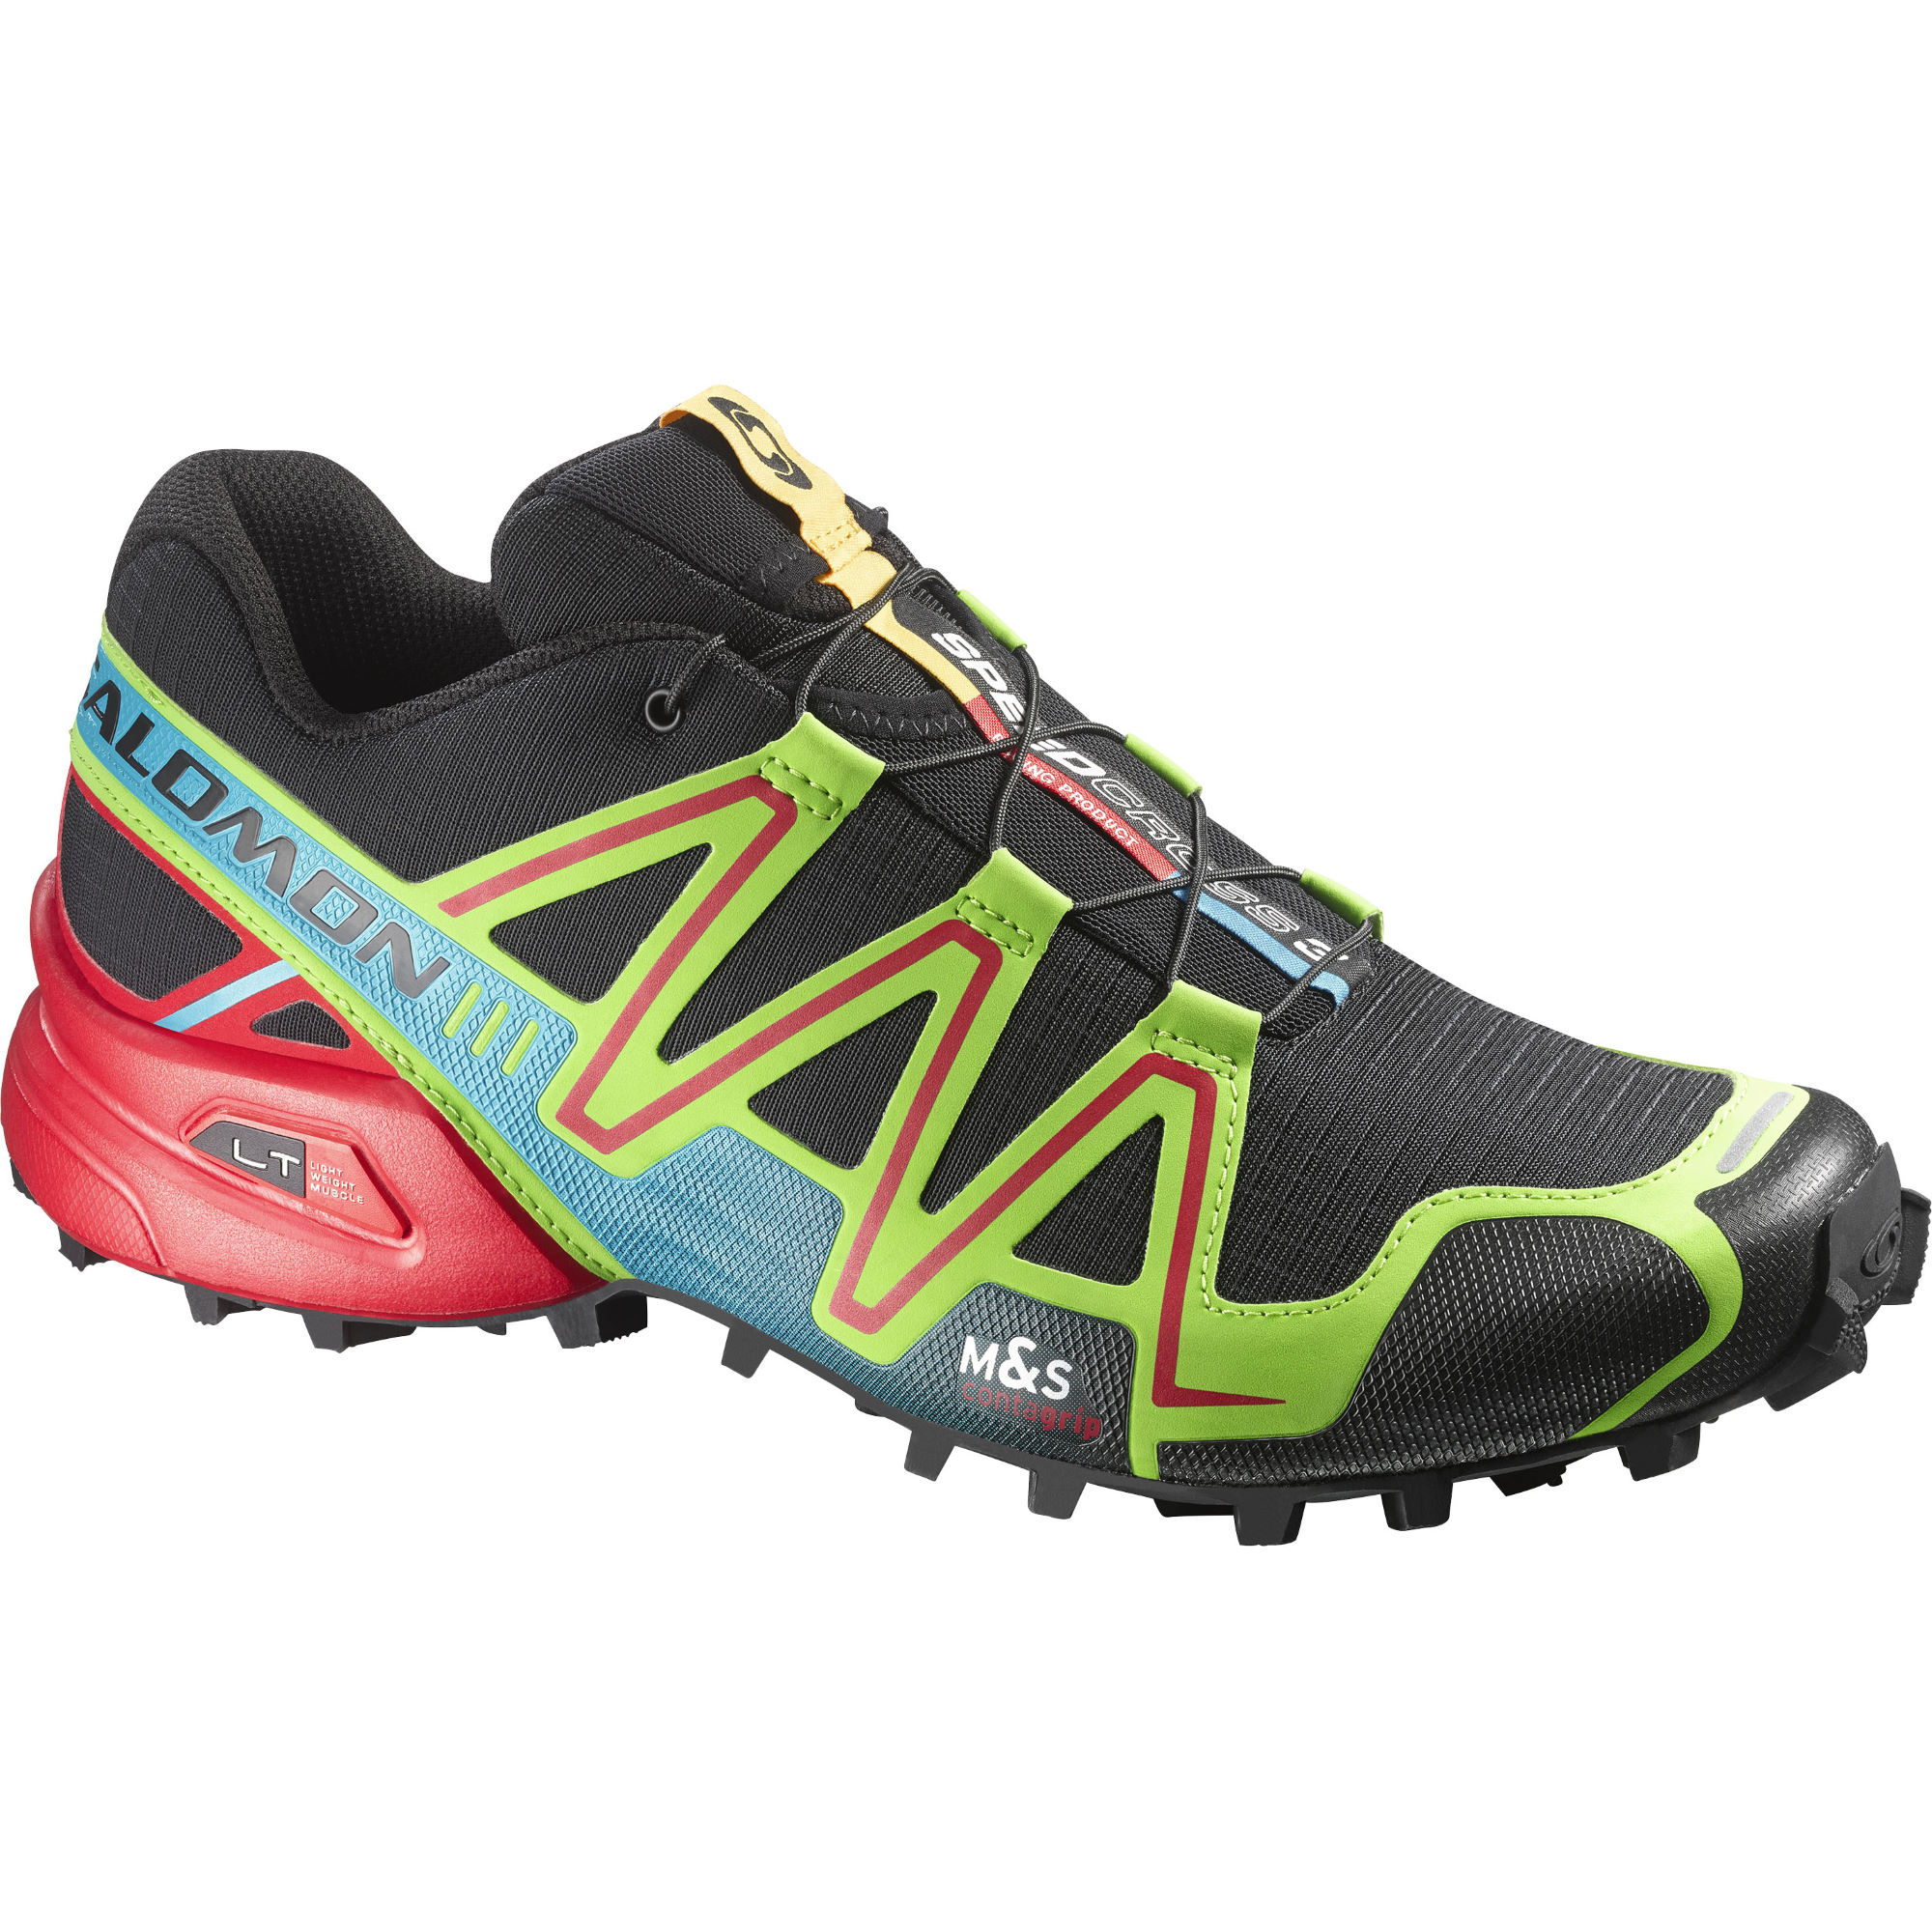 wiggle salomon speedcross 3 black green shoes ss15 offroad running shoes. Black Bedroom Furniture Sets. Home Design Ideas